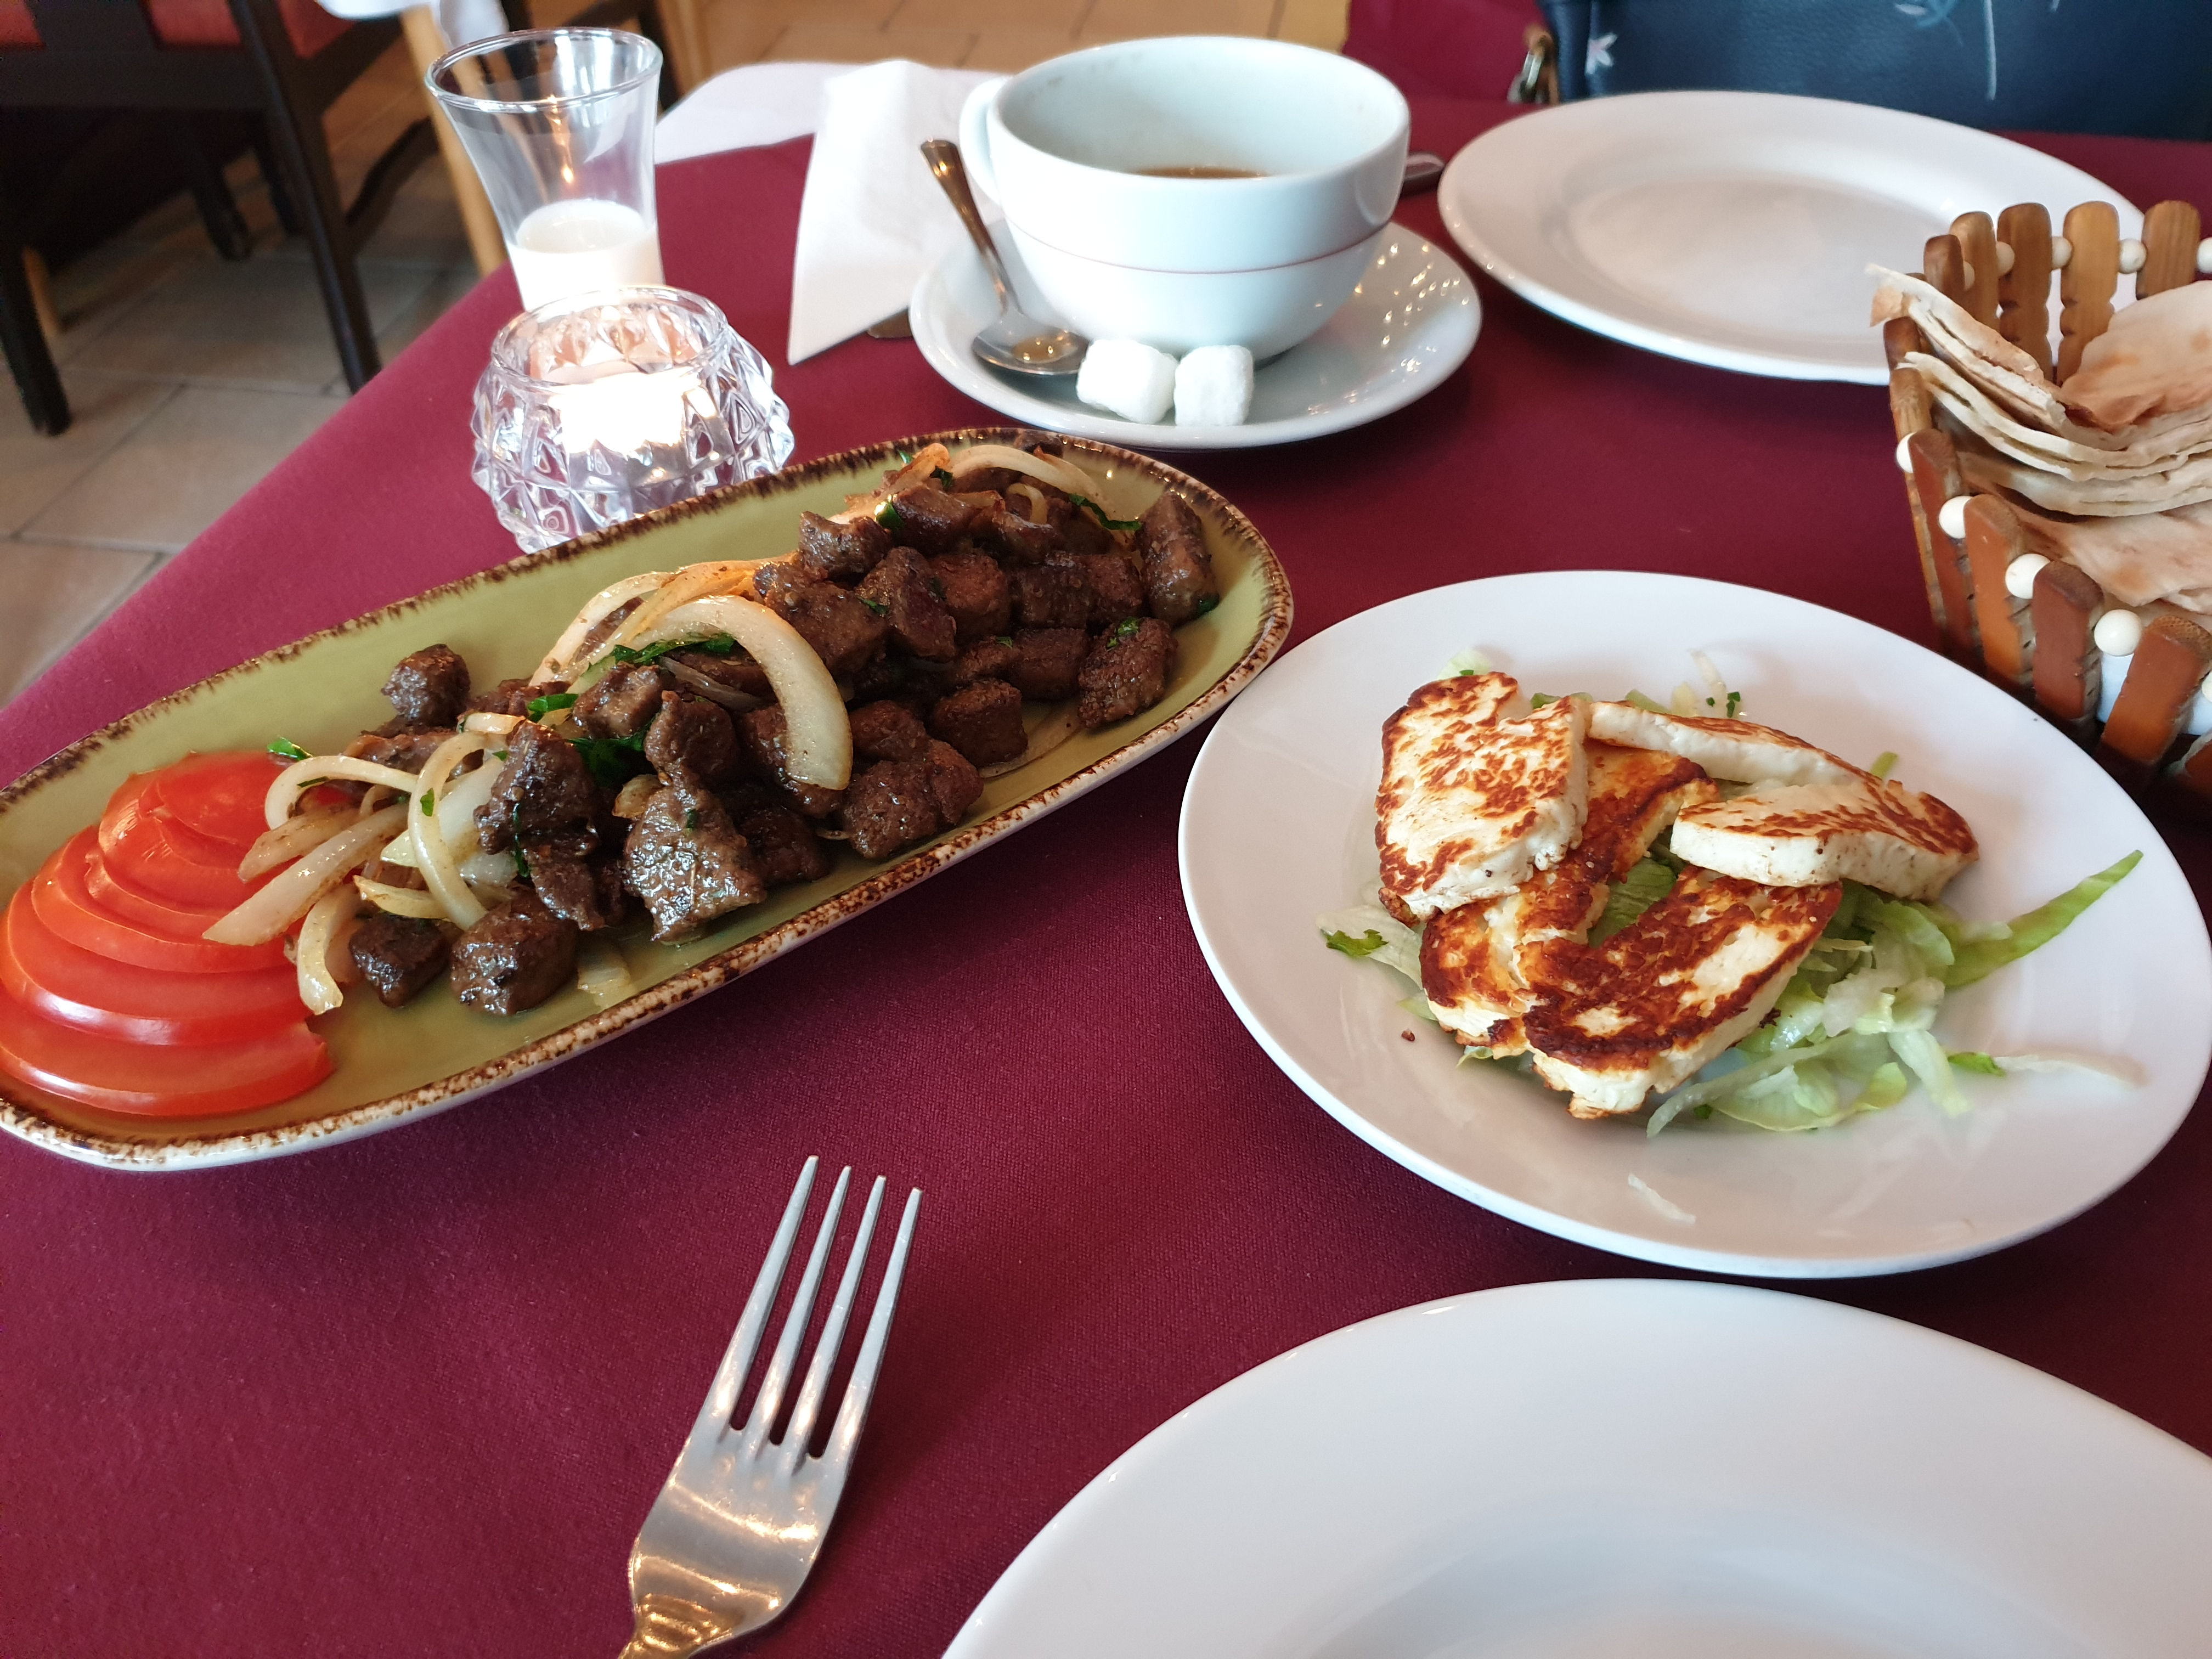 Haloumi and Liver starters